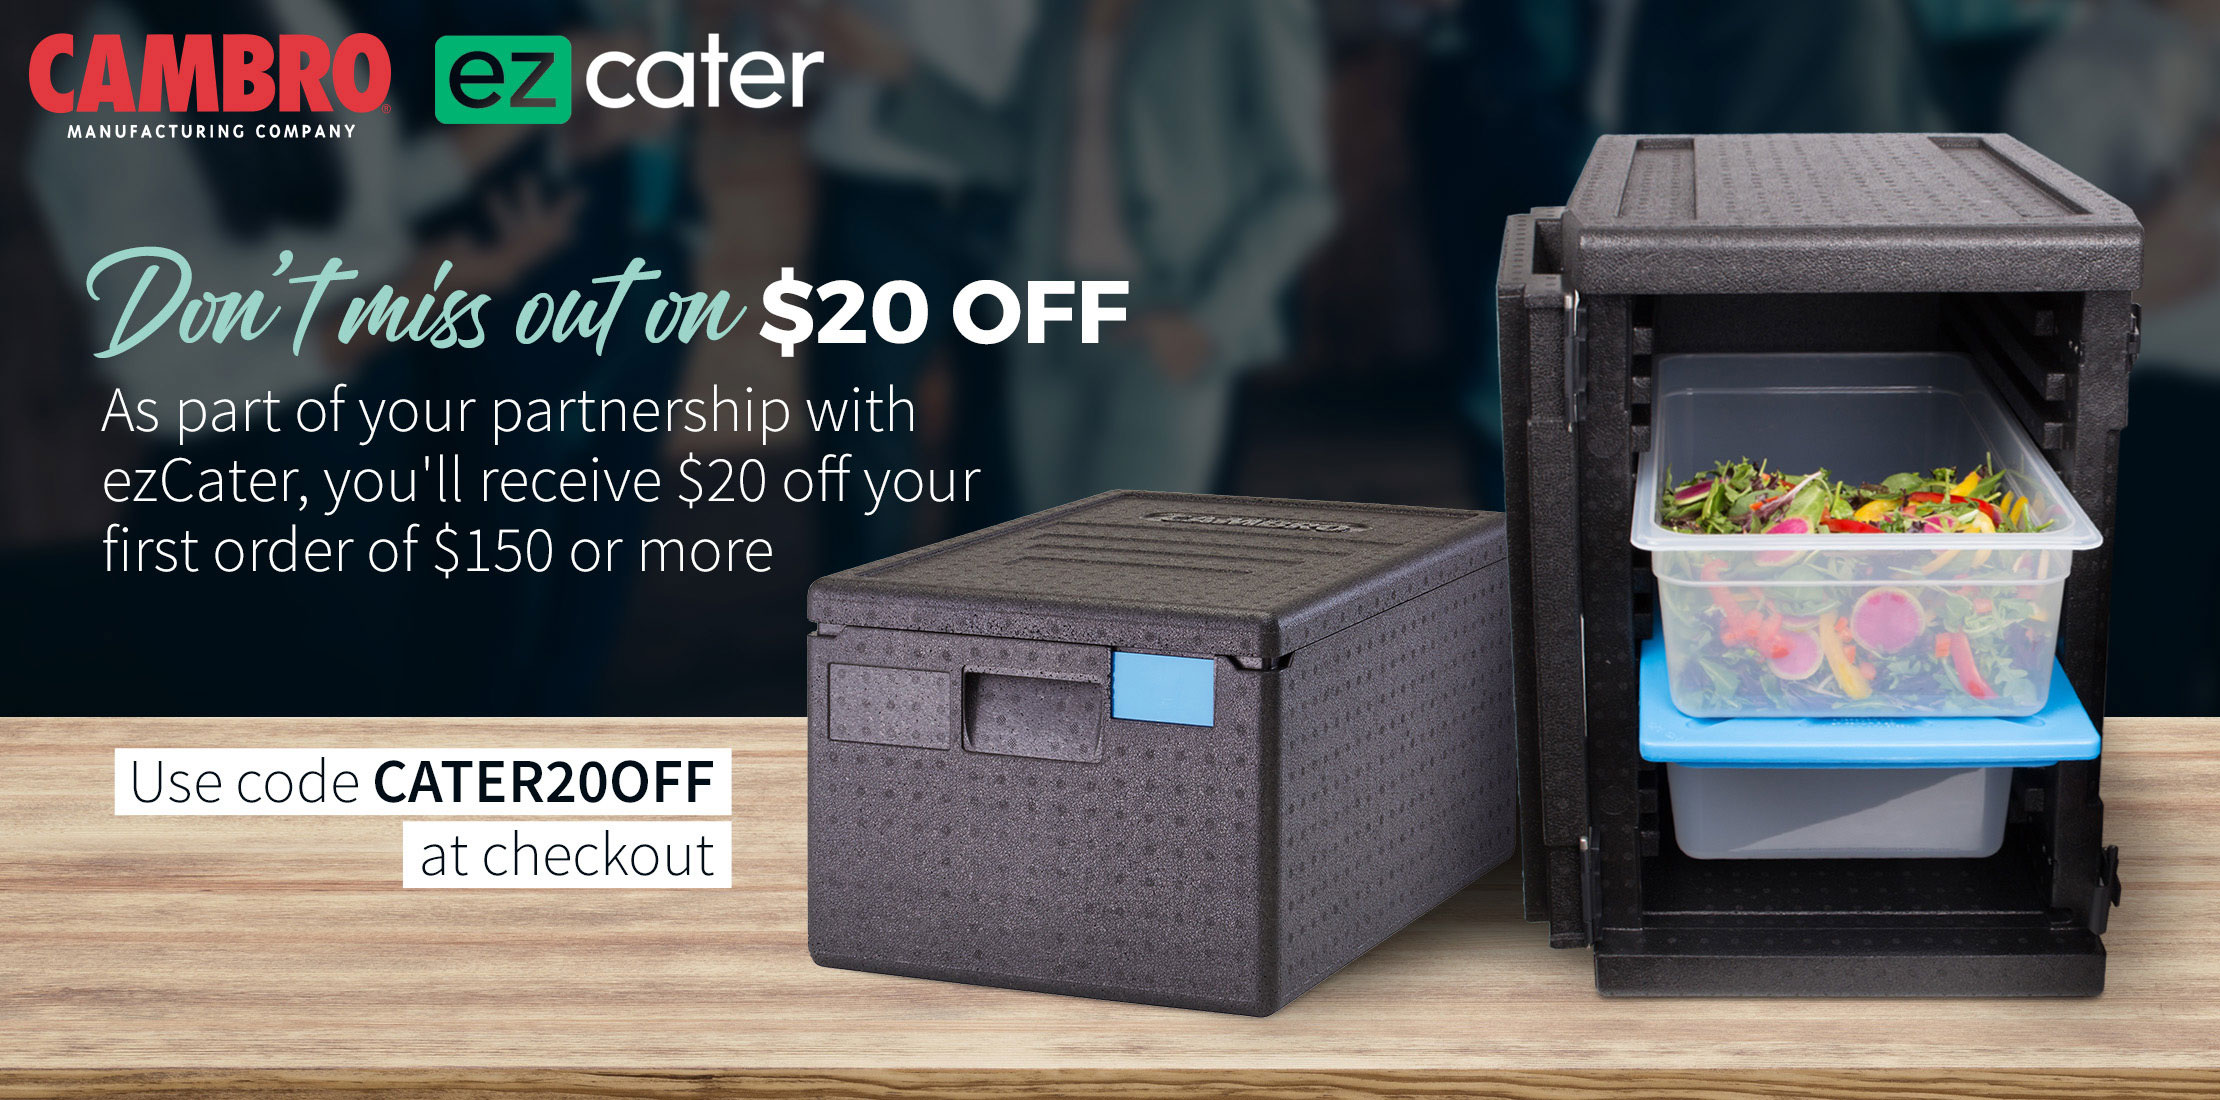 Take 5% off Cambro® catering supplies